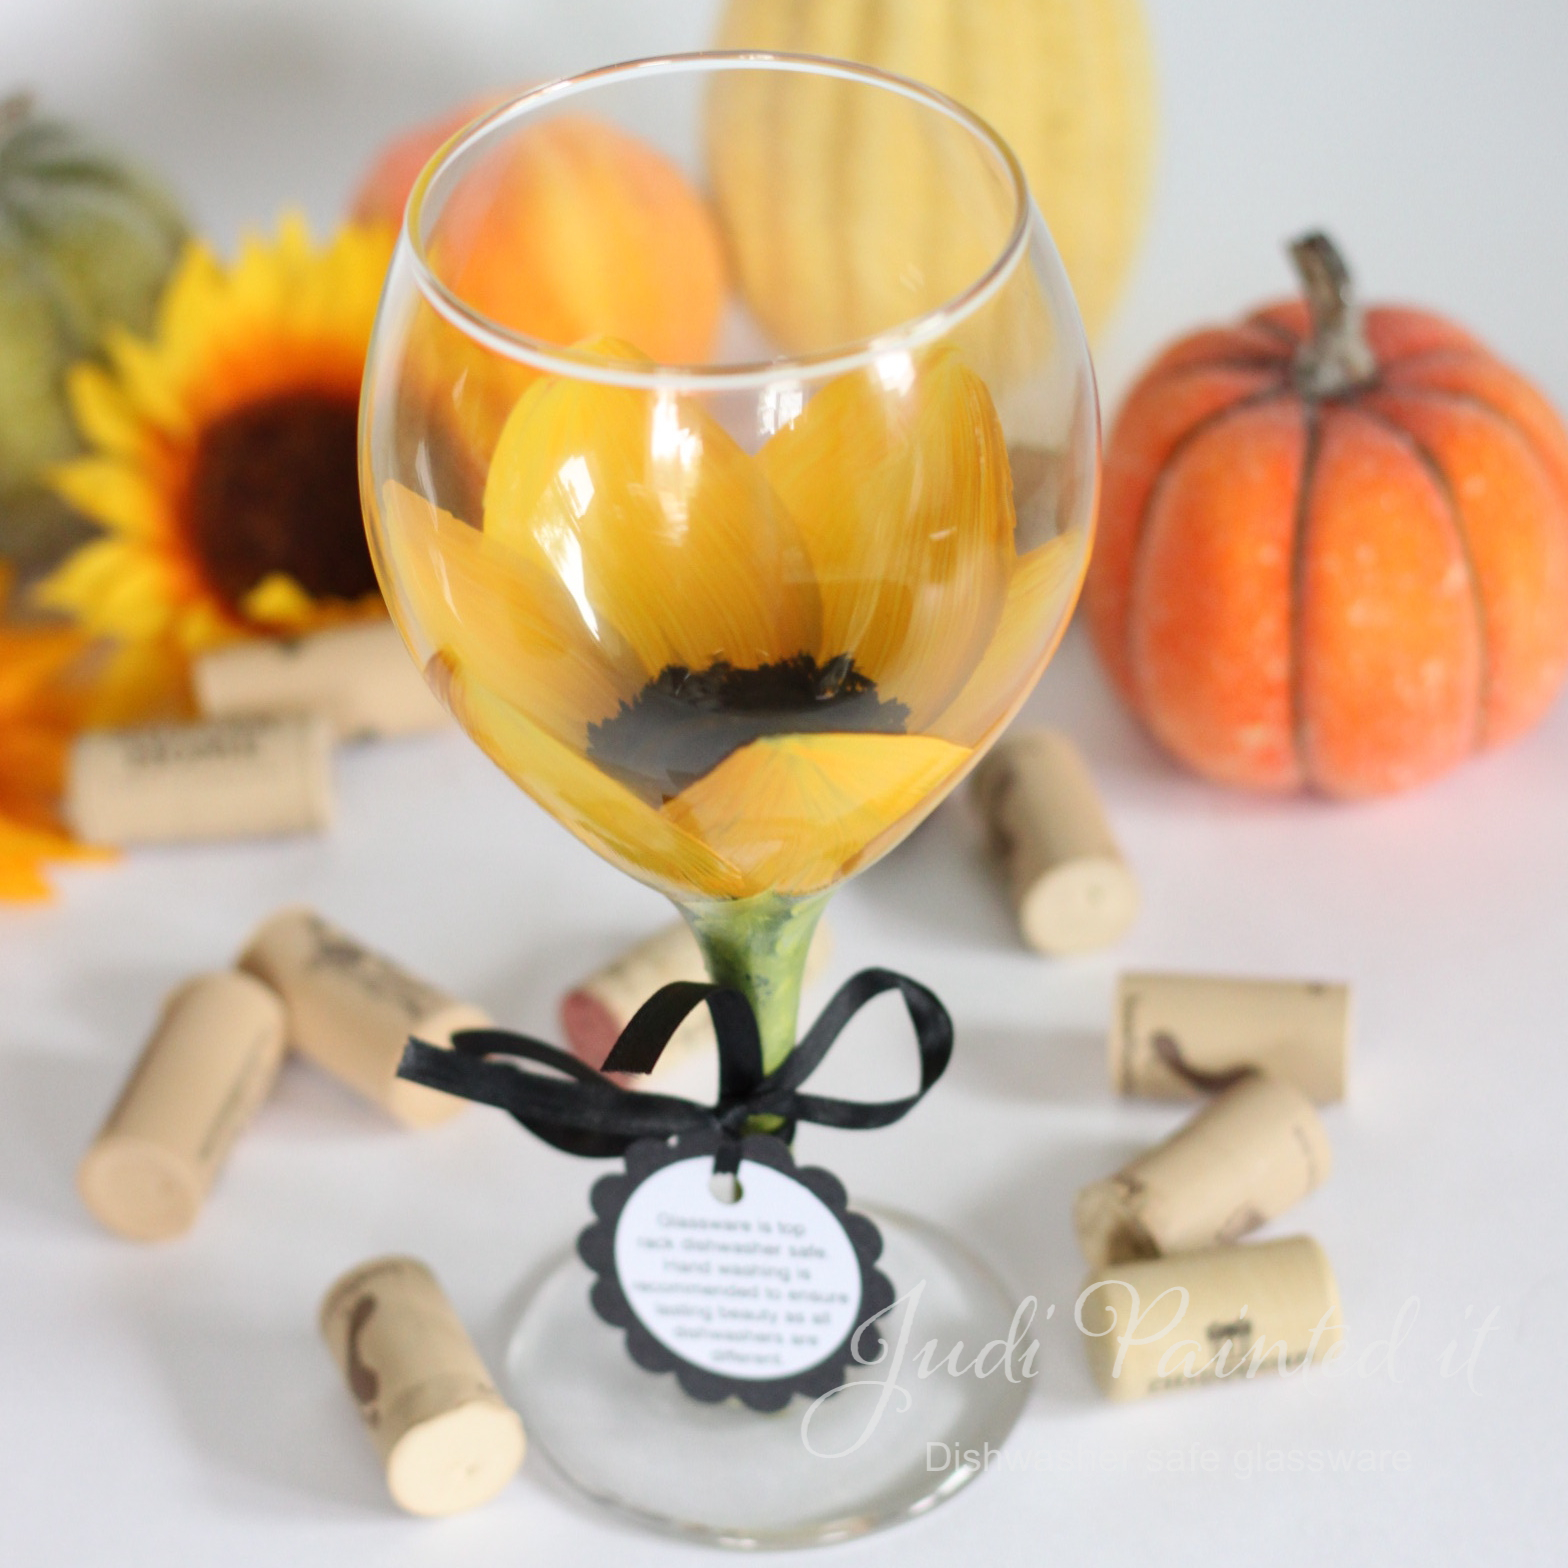 Uncategorized Dishwasher Safe Paint For Glass sunflower painted wine glass that is dishwasher safe on luulla safe